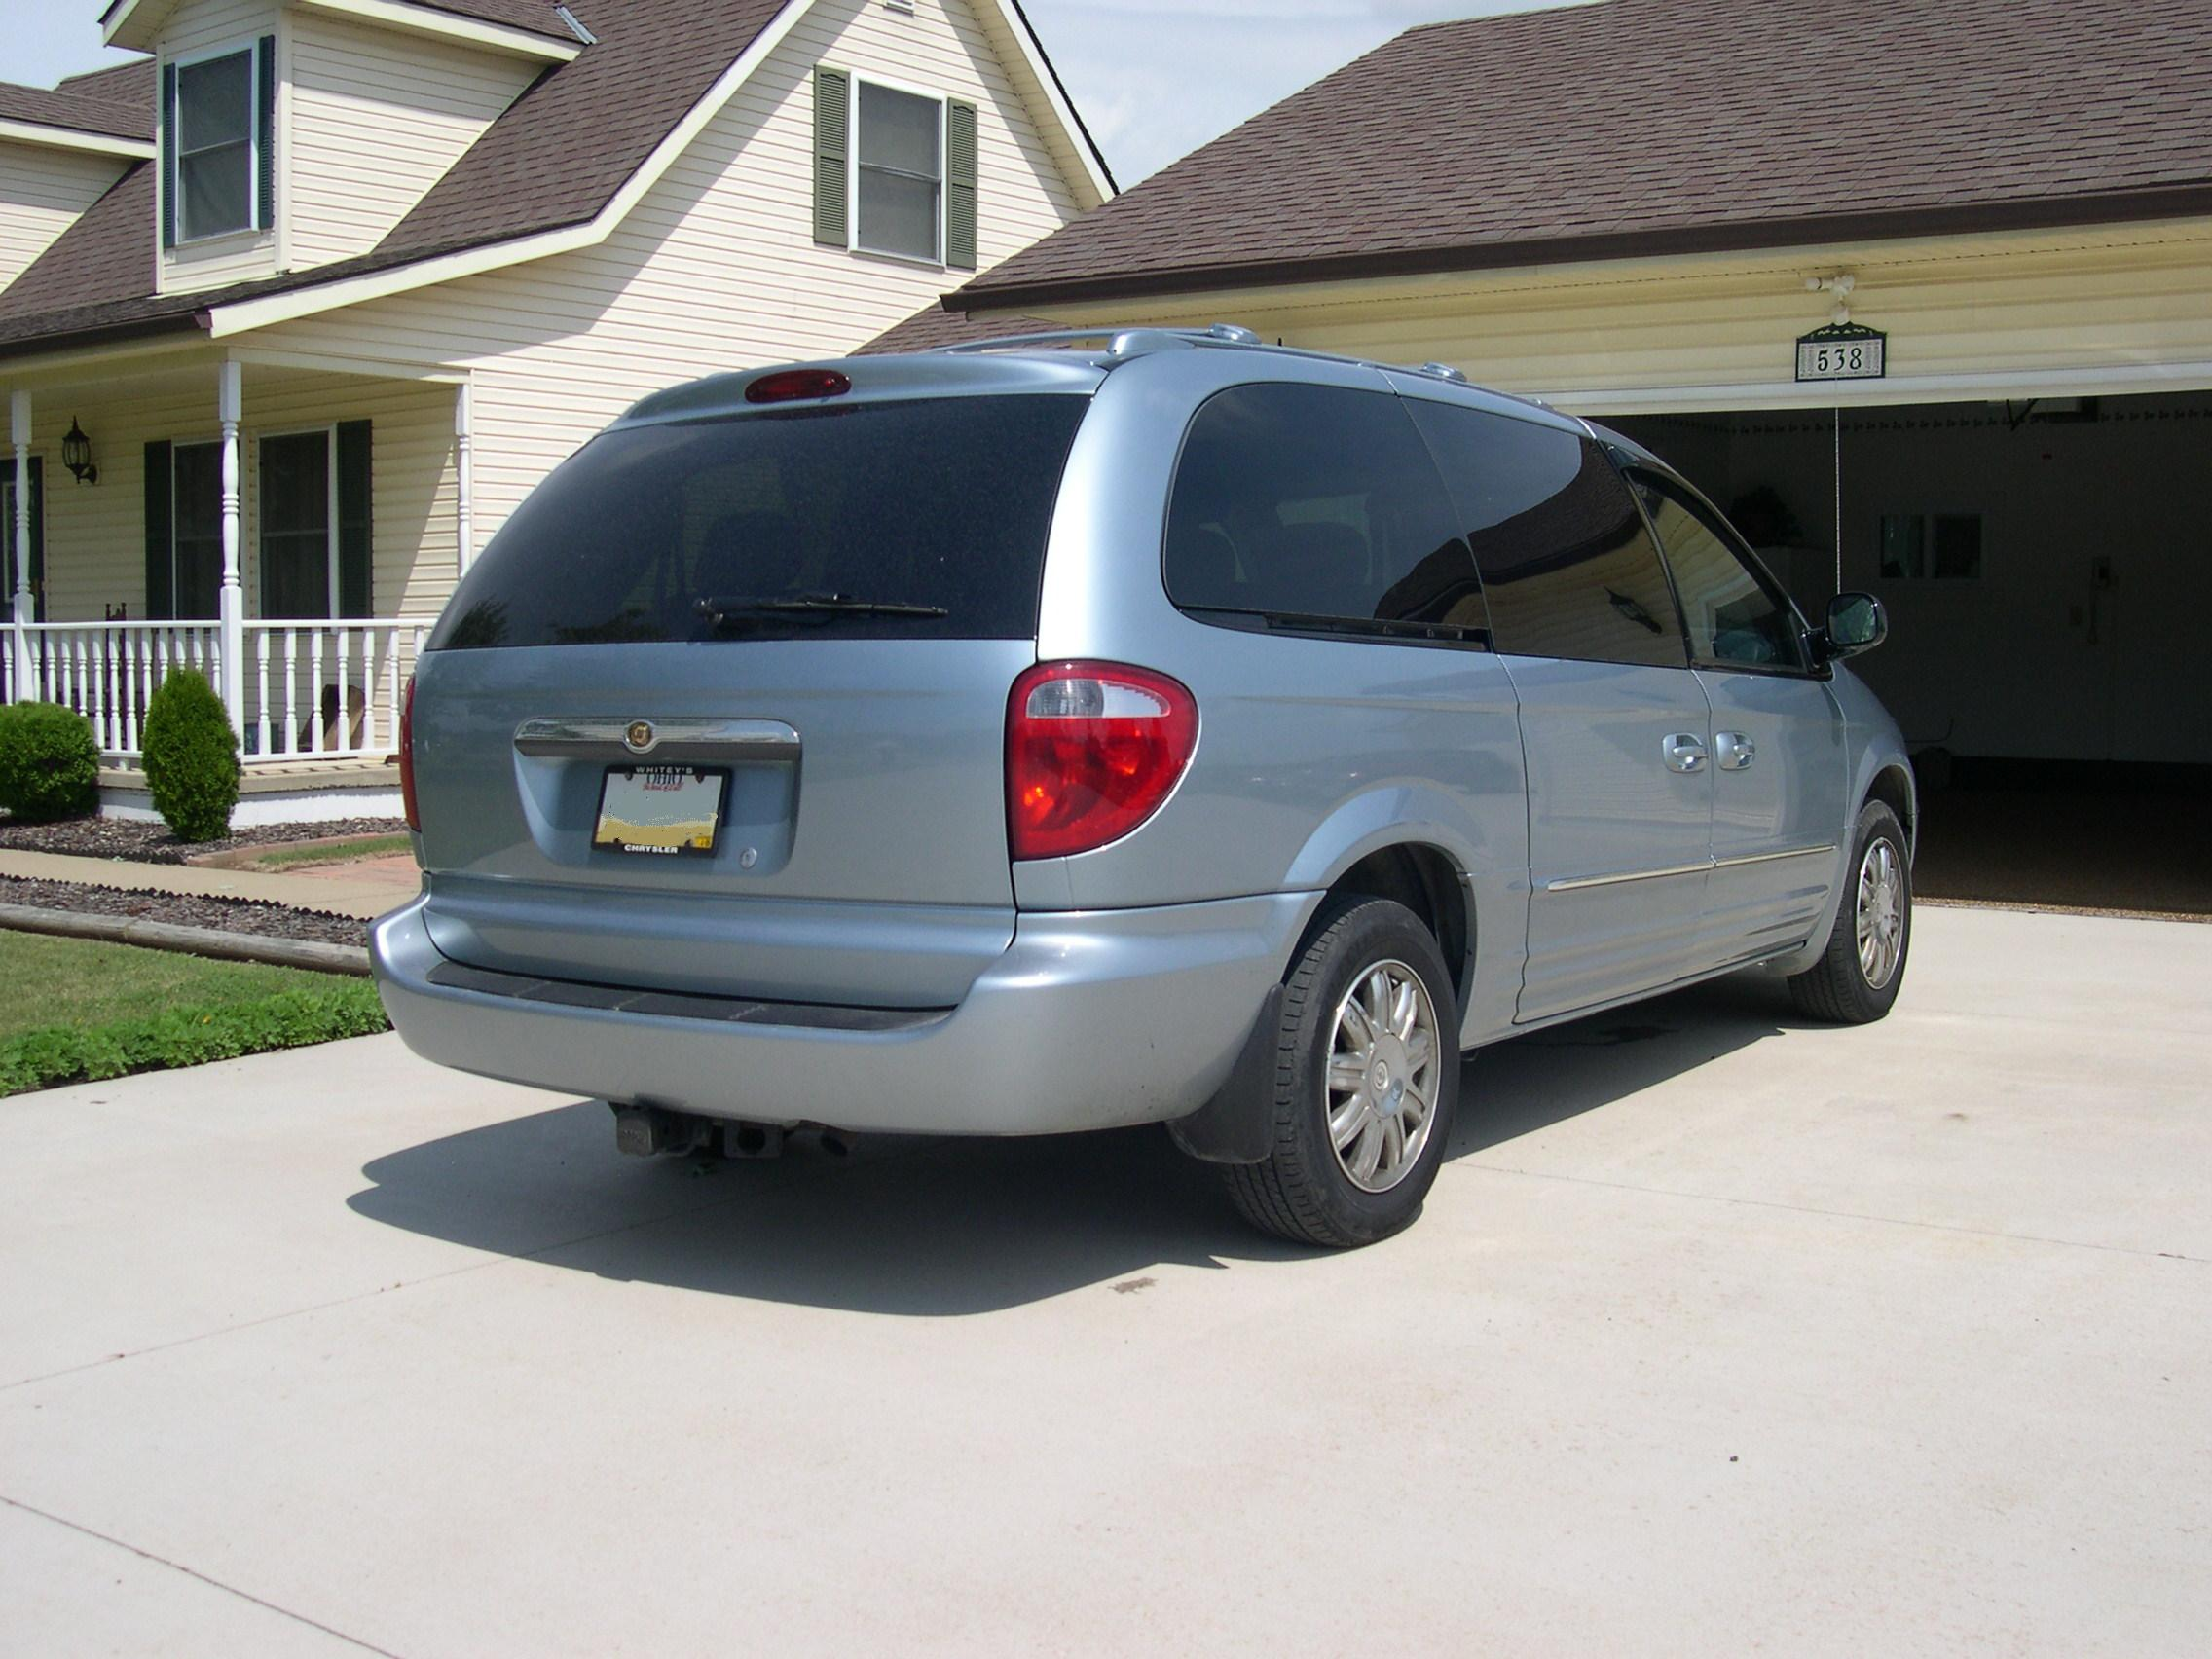 2005 chrysler town and country image 1. Black Bedroom Furniture Sets. Home Design Ideas